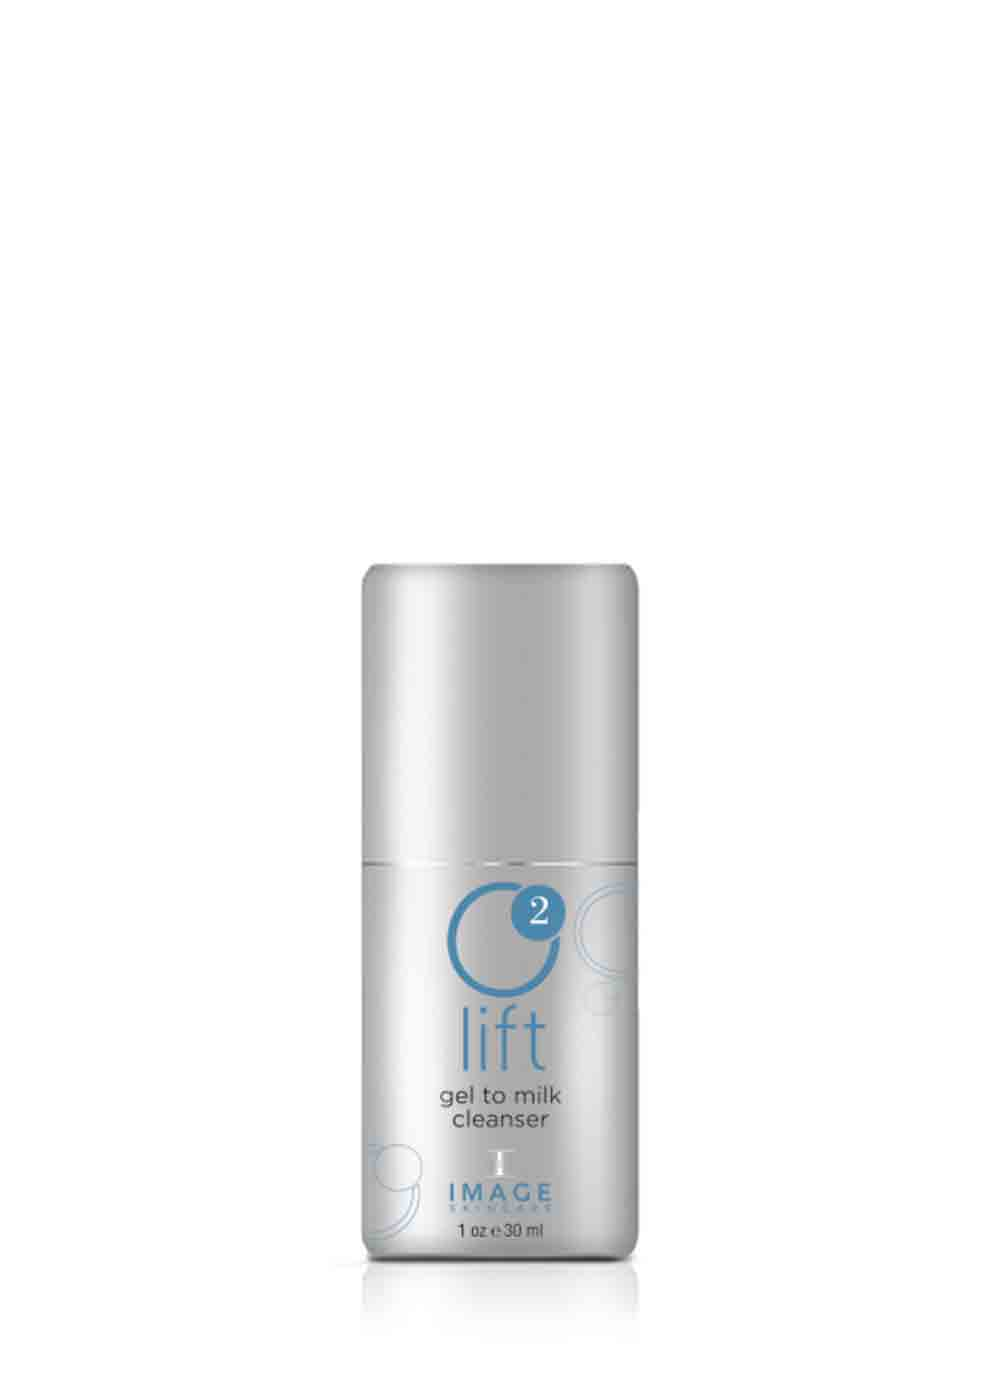 O2 LIFT    gel to milk cleanser